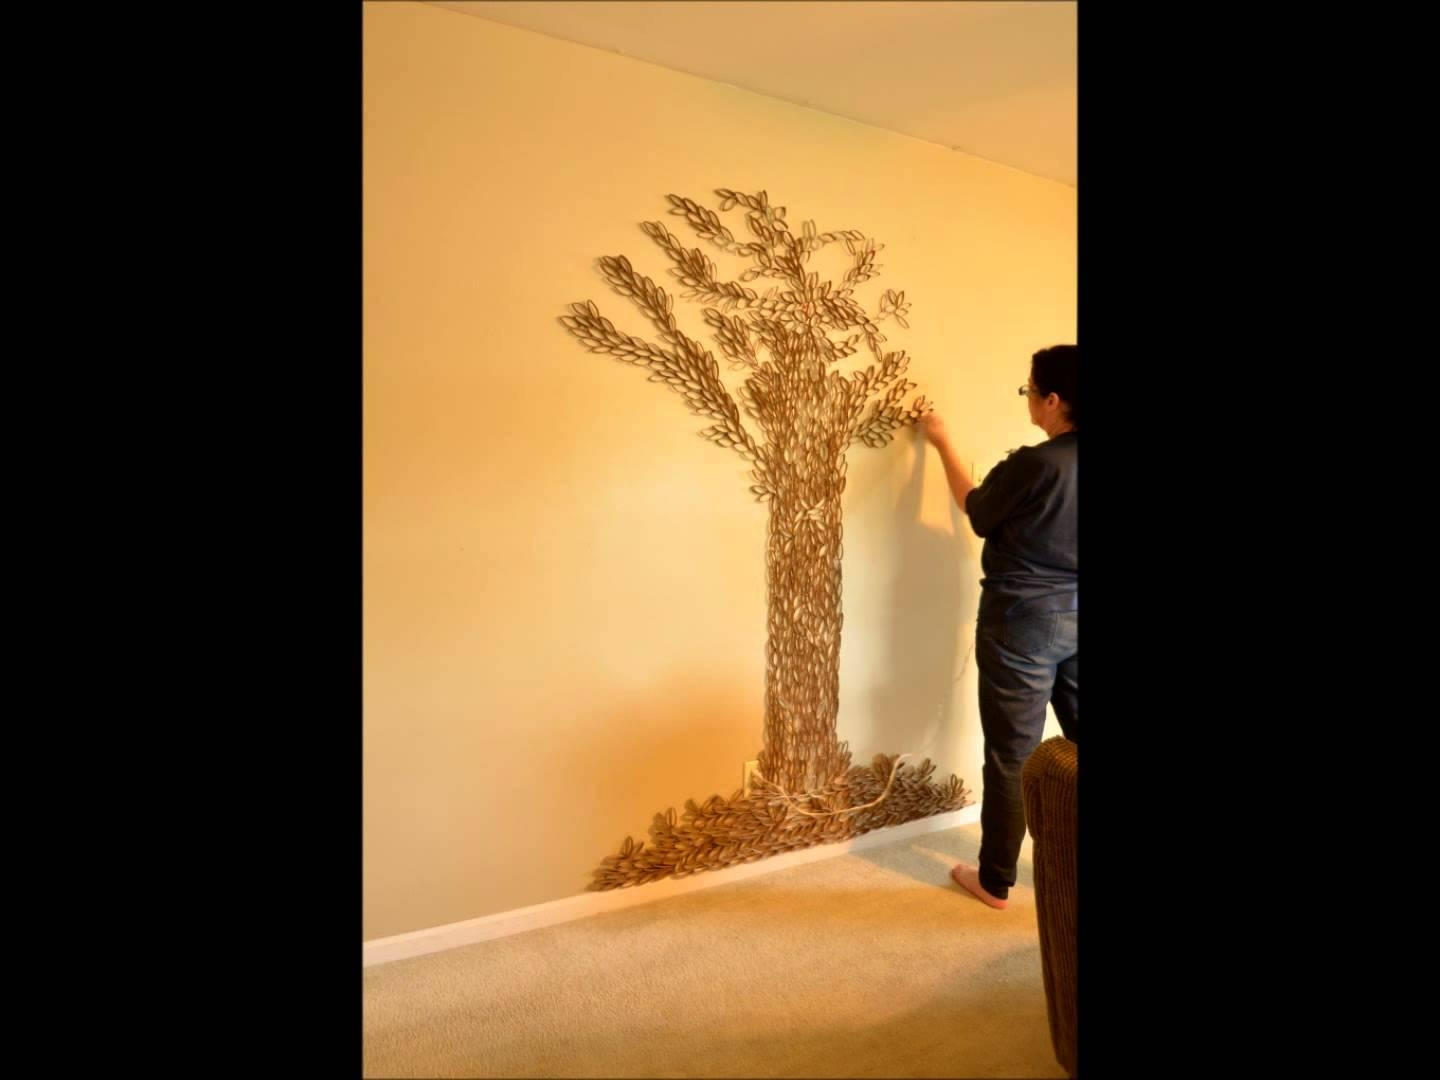 Tree Of Life Wall Art – 7Ft Paper Roll Sculpture In 1 Minute Regarding Tree Sculpture Wall Art (Image 14 of 20)